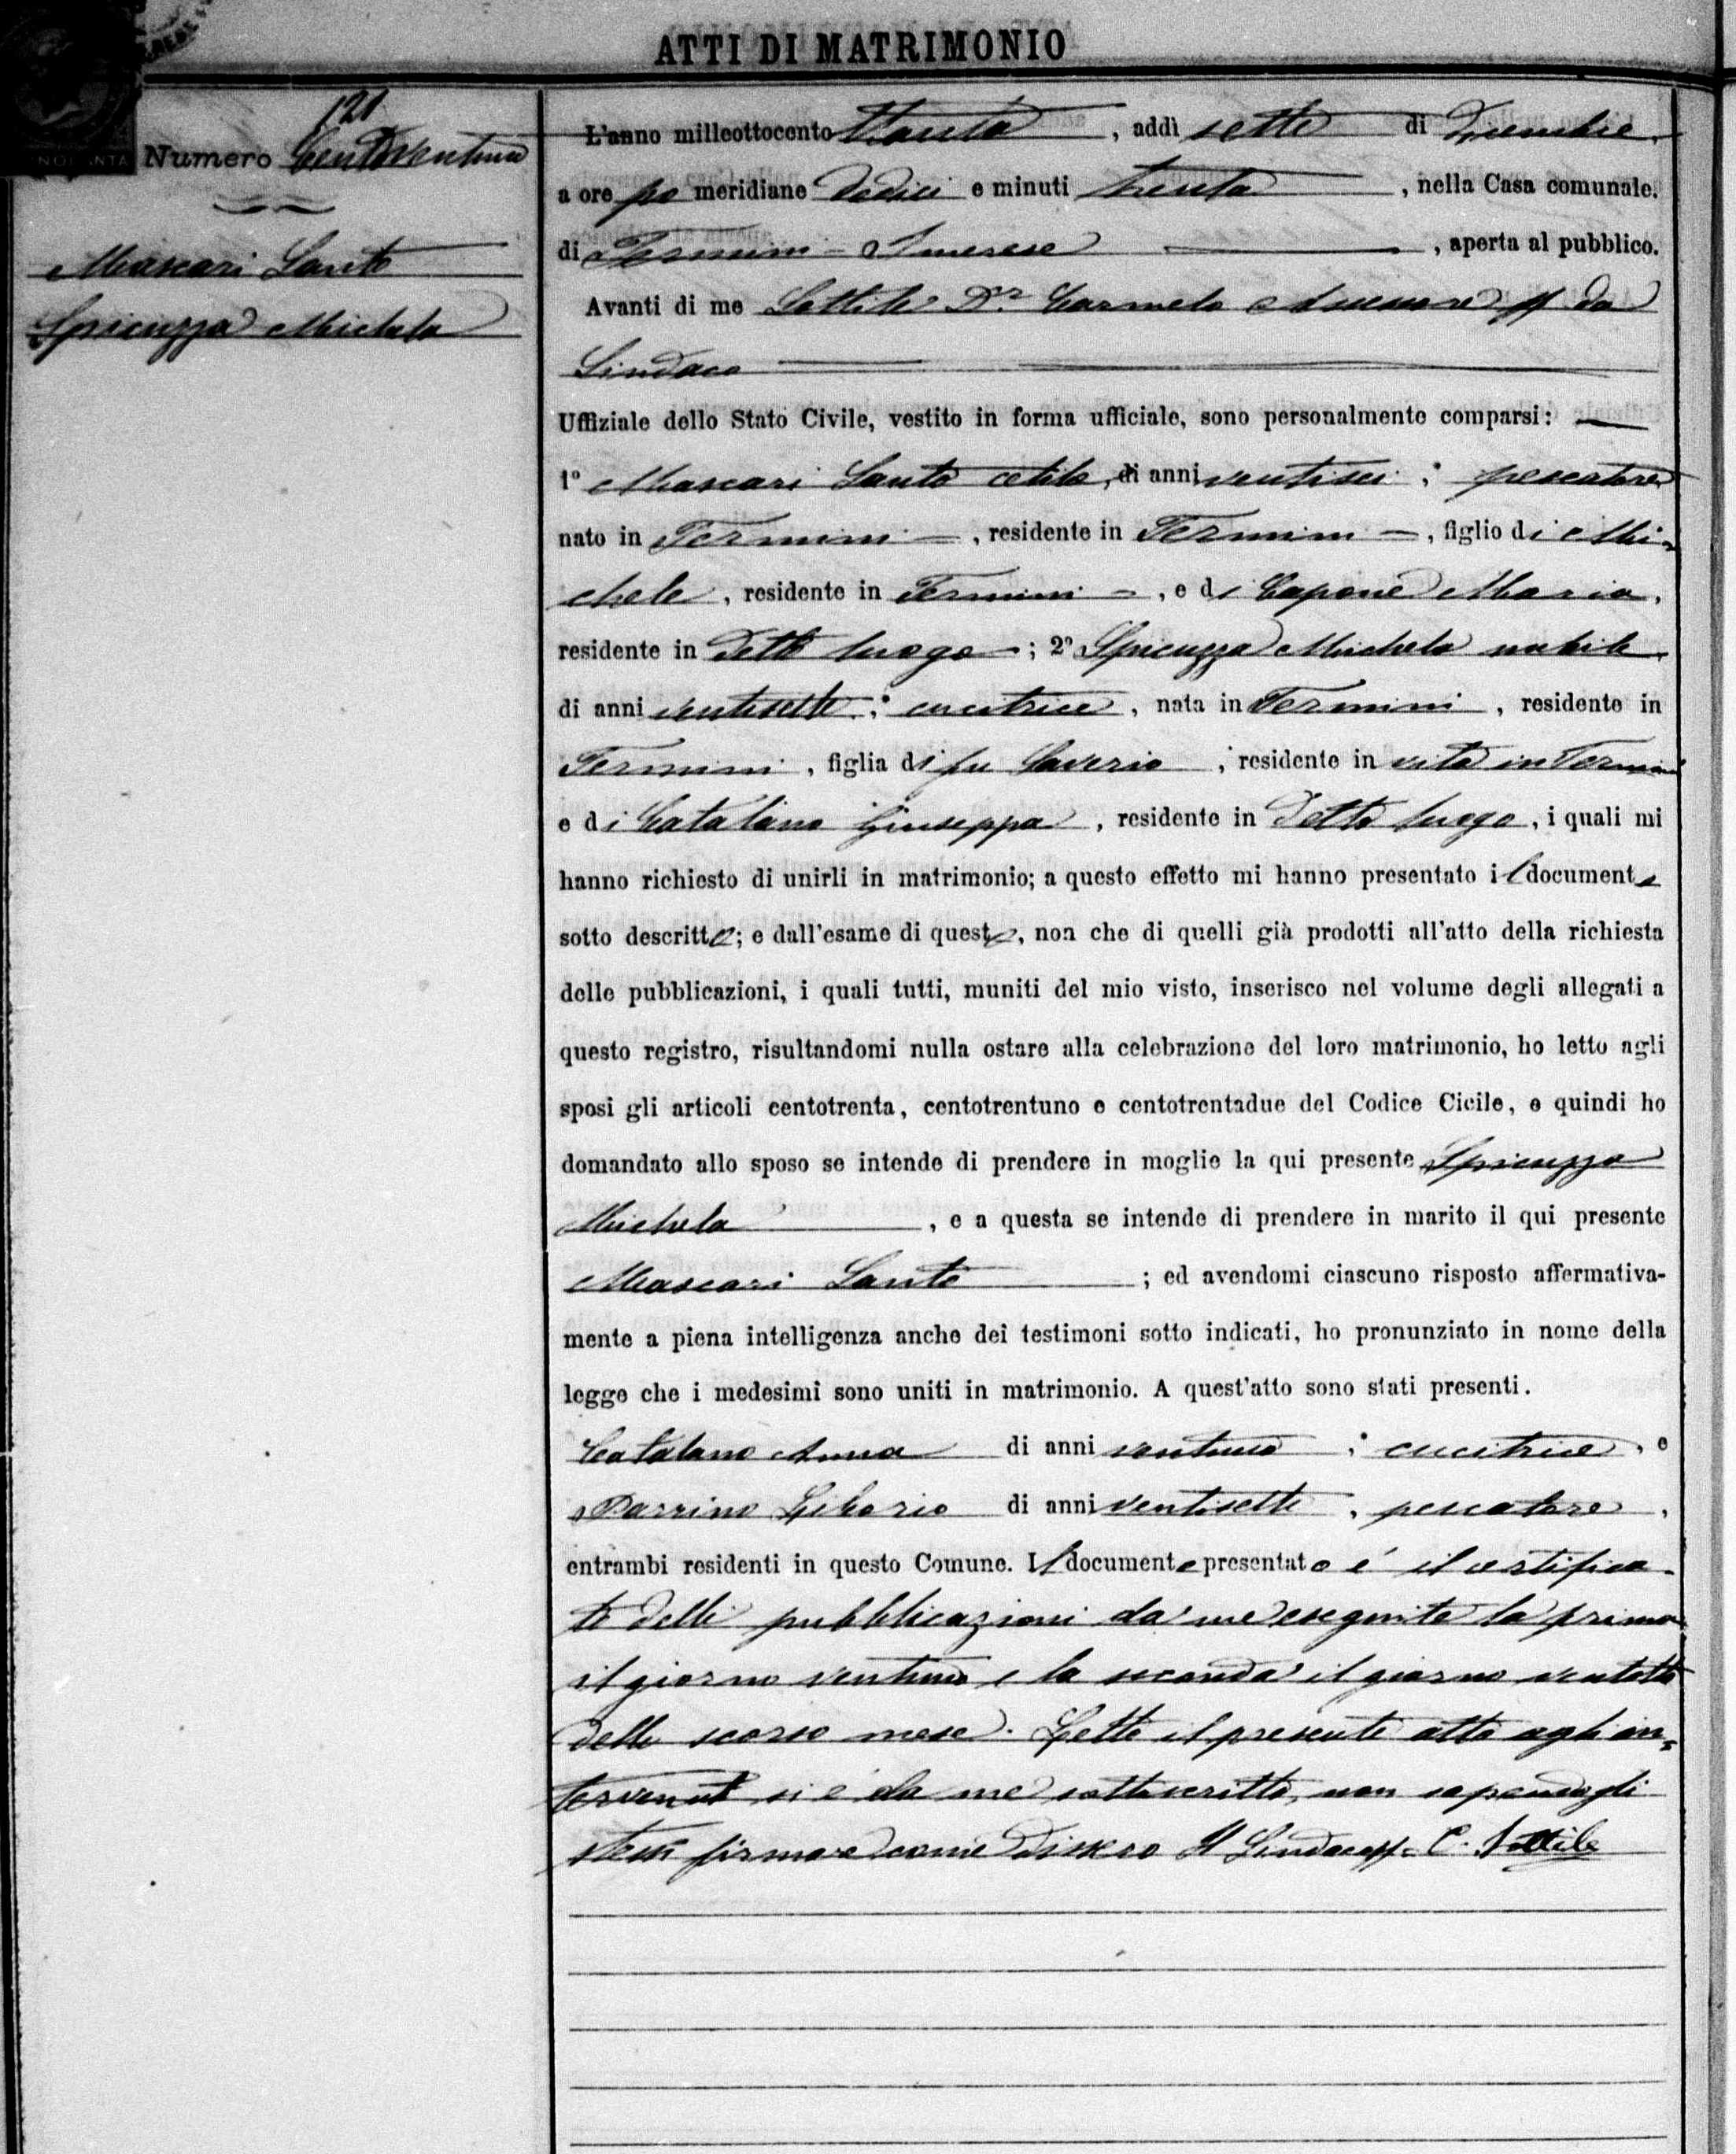 Mascari Santo & Michela Spicuzza 1880 7 Dec Marriage .jpg